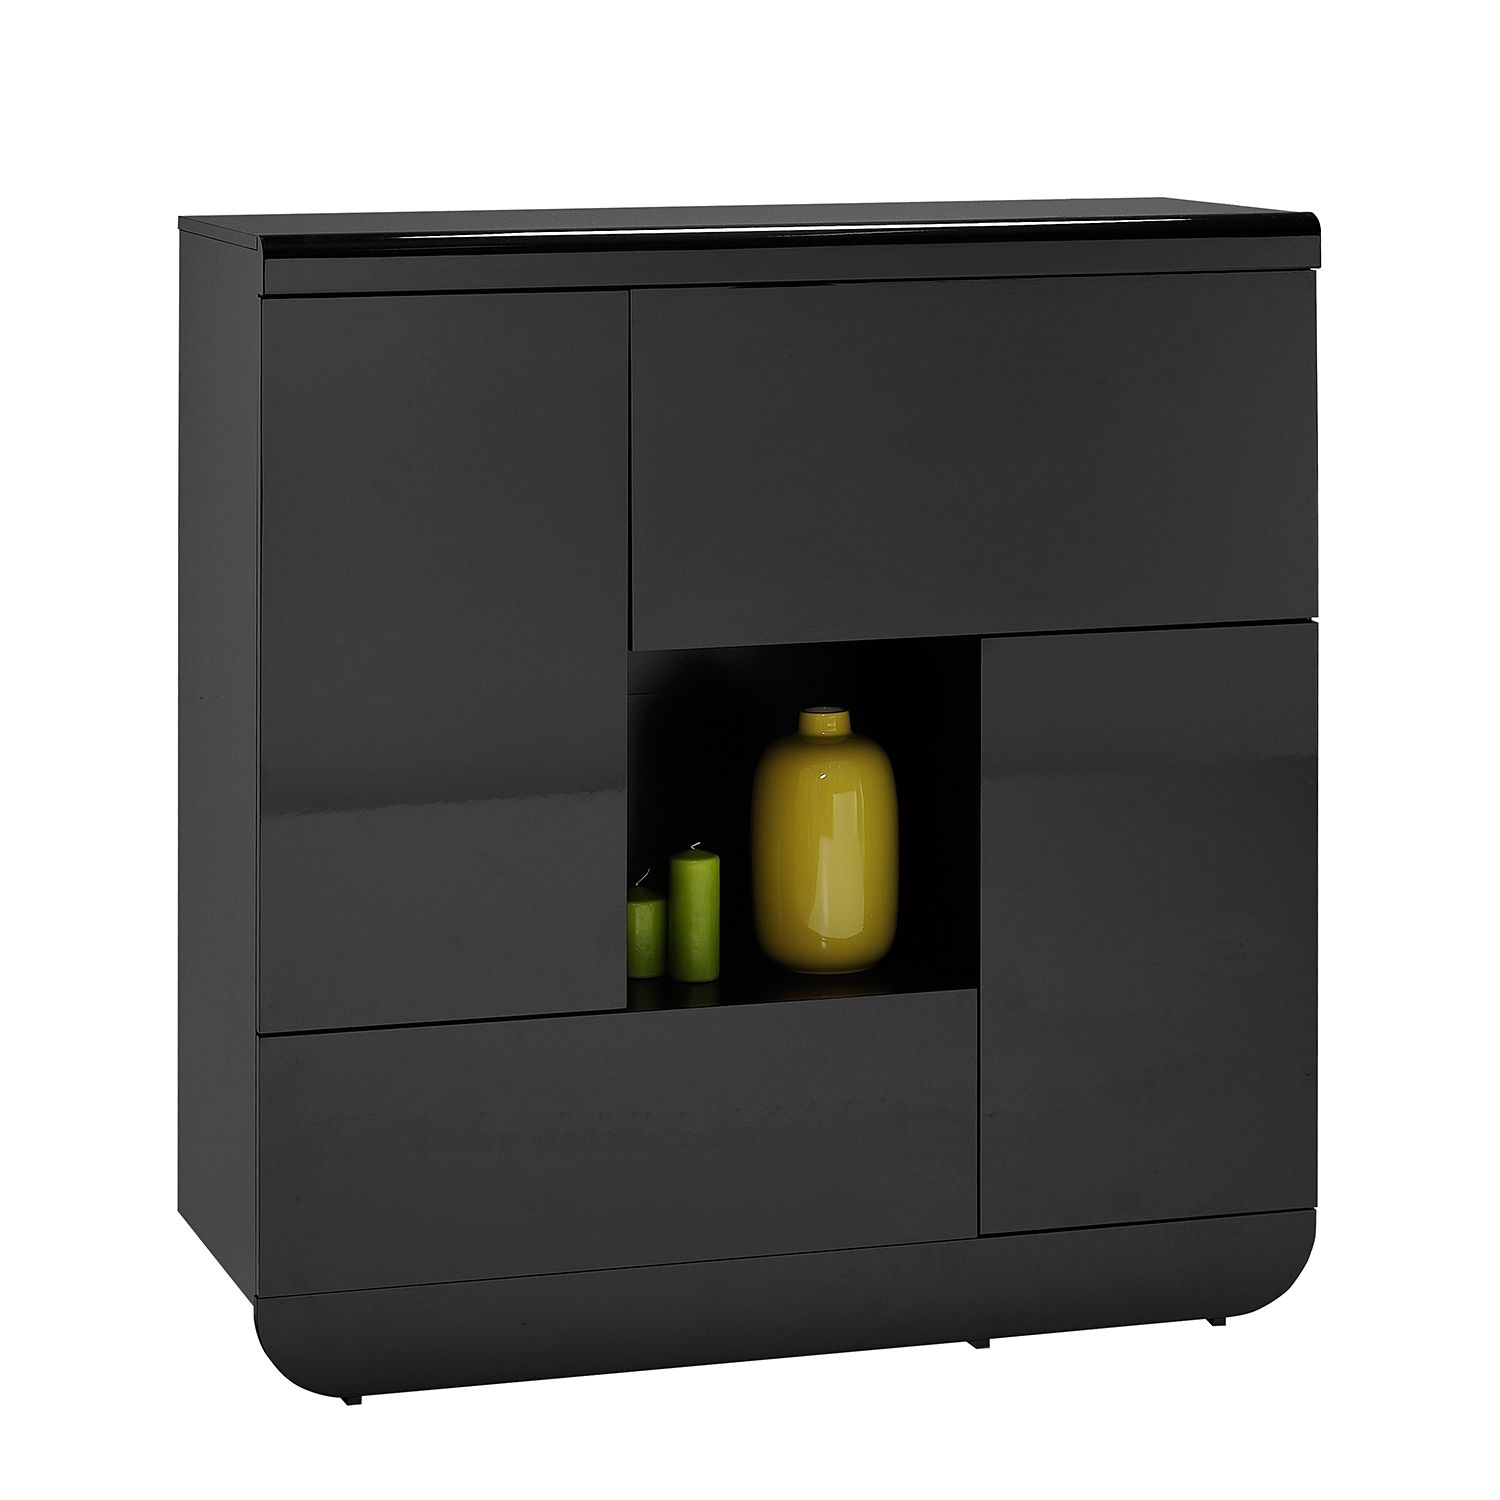 kommode schwarz hochglanz preisvergleich die besten angebote online kaufen. Black Bedroom Furniture Sets. Home Design Ideas